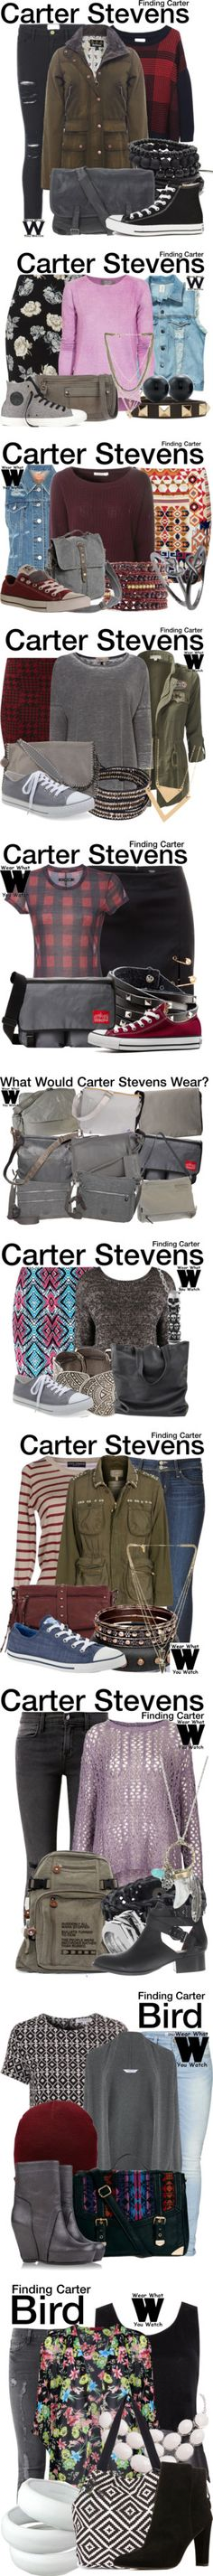 Wear What You Watch(Finding Carter) by nessiecullen2286 on Polyvore featuring Frame Denim, Band of Outsiders, Barbour, Numero 10, Converse, television, wearwhatyouwatch, Volcom, Valentino and Corsia